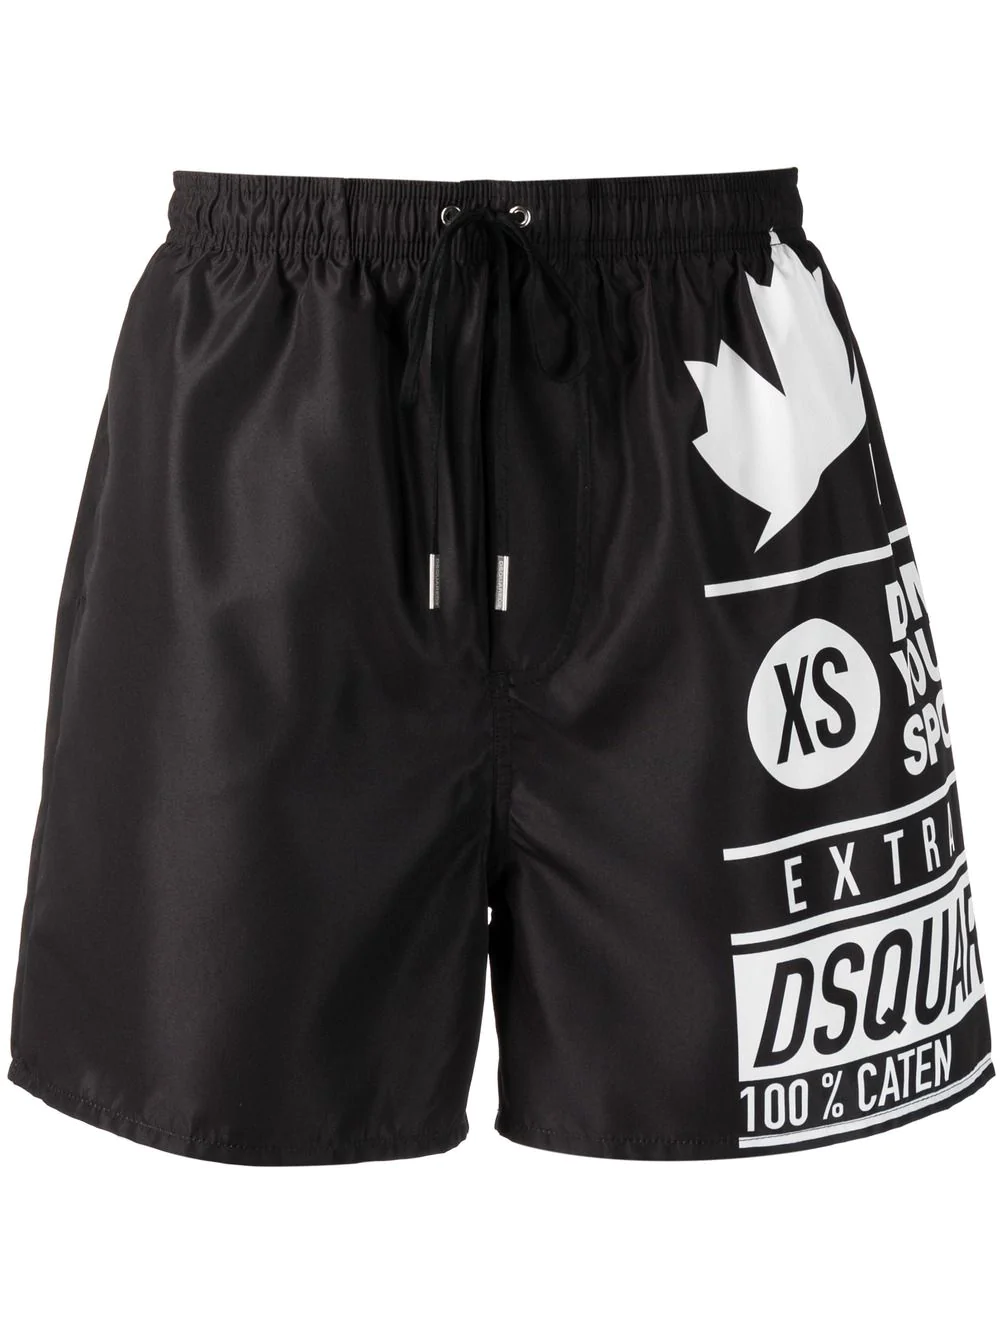 2021 Summer New Men's DSQ2 Casual Sports Shorts Trendy Fashion Stretch Beach Pants Breathable And Quick Drying Five Point Pants